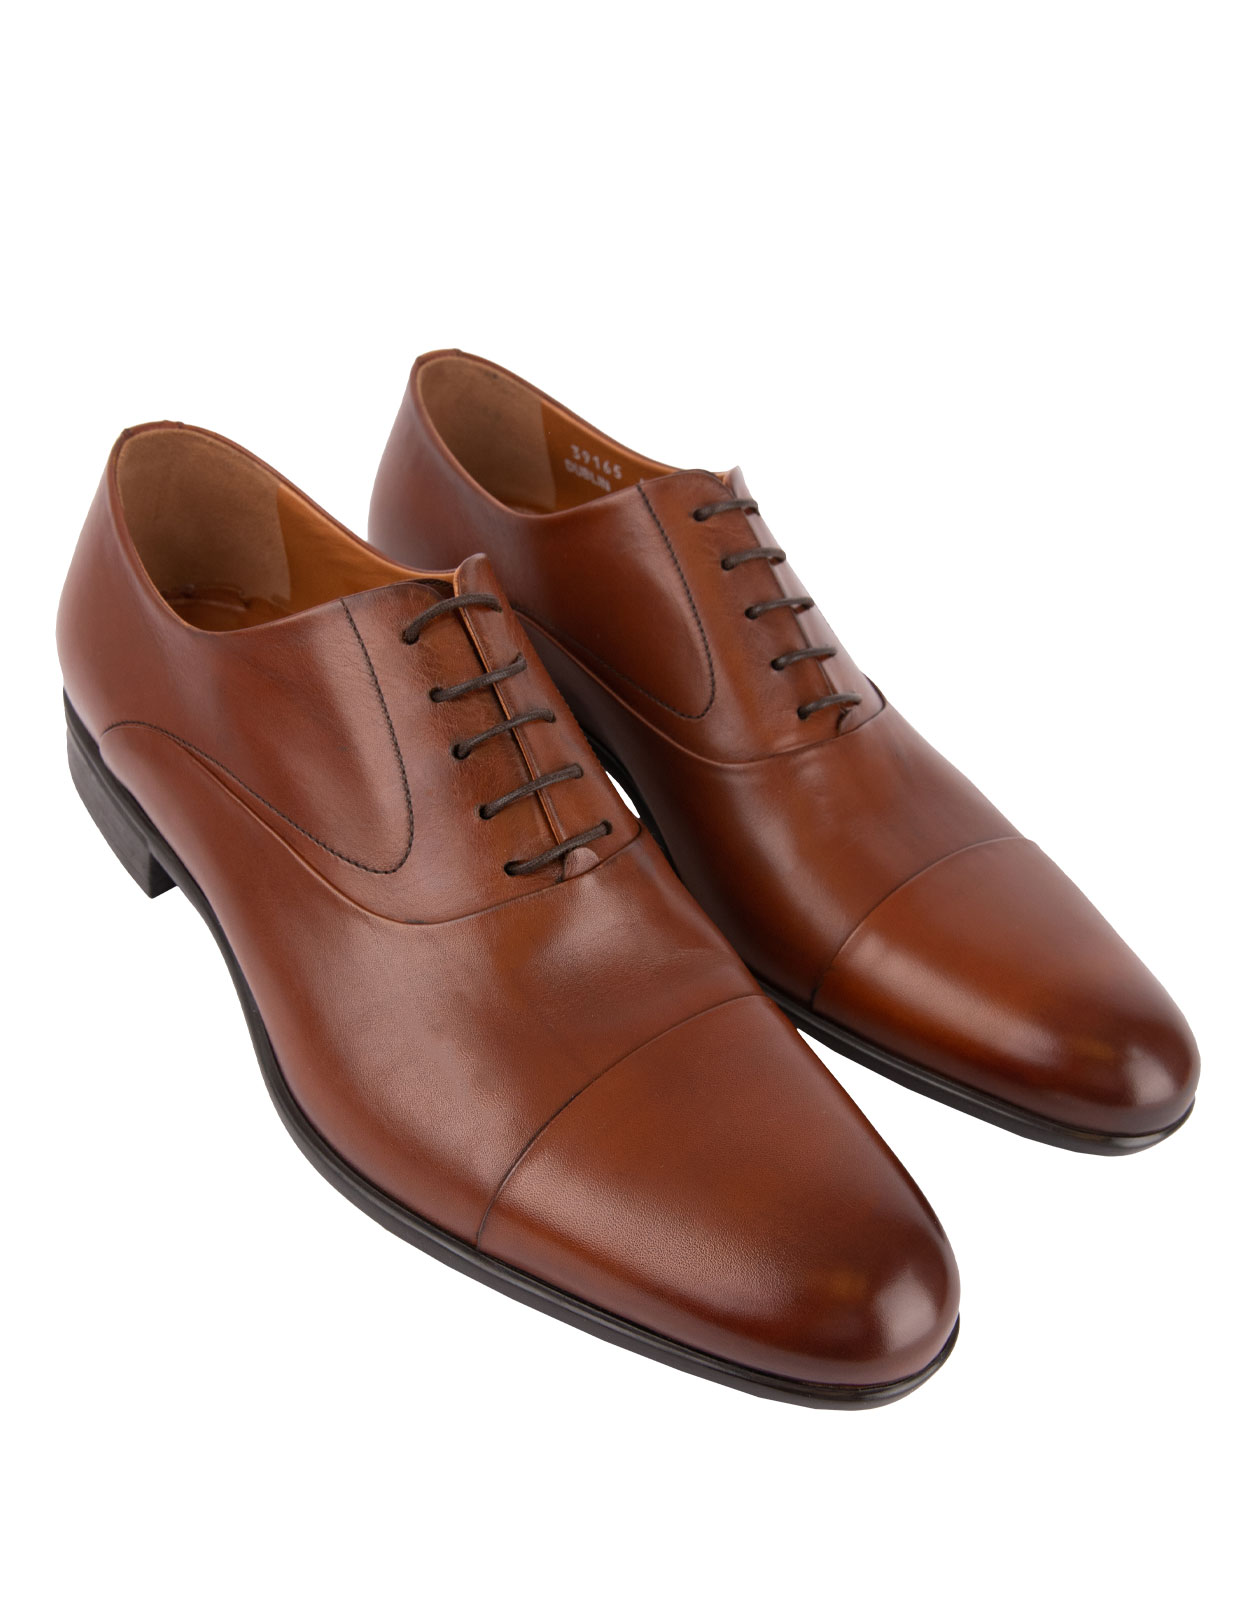 Dublin Oxford Shoe Calfskin With  Rubber Sole Tan